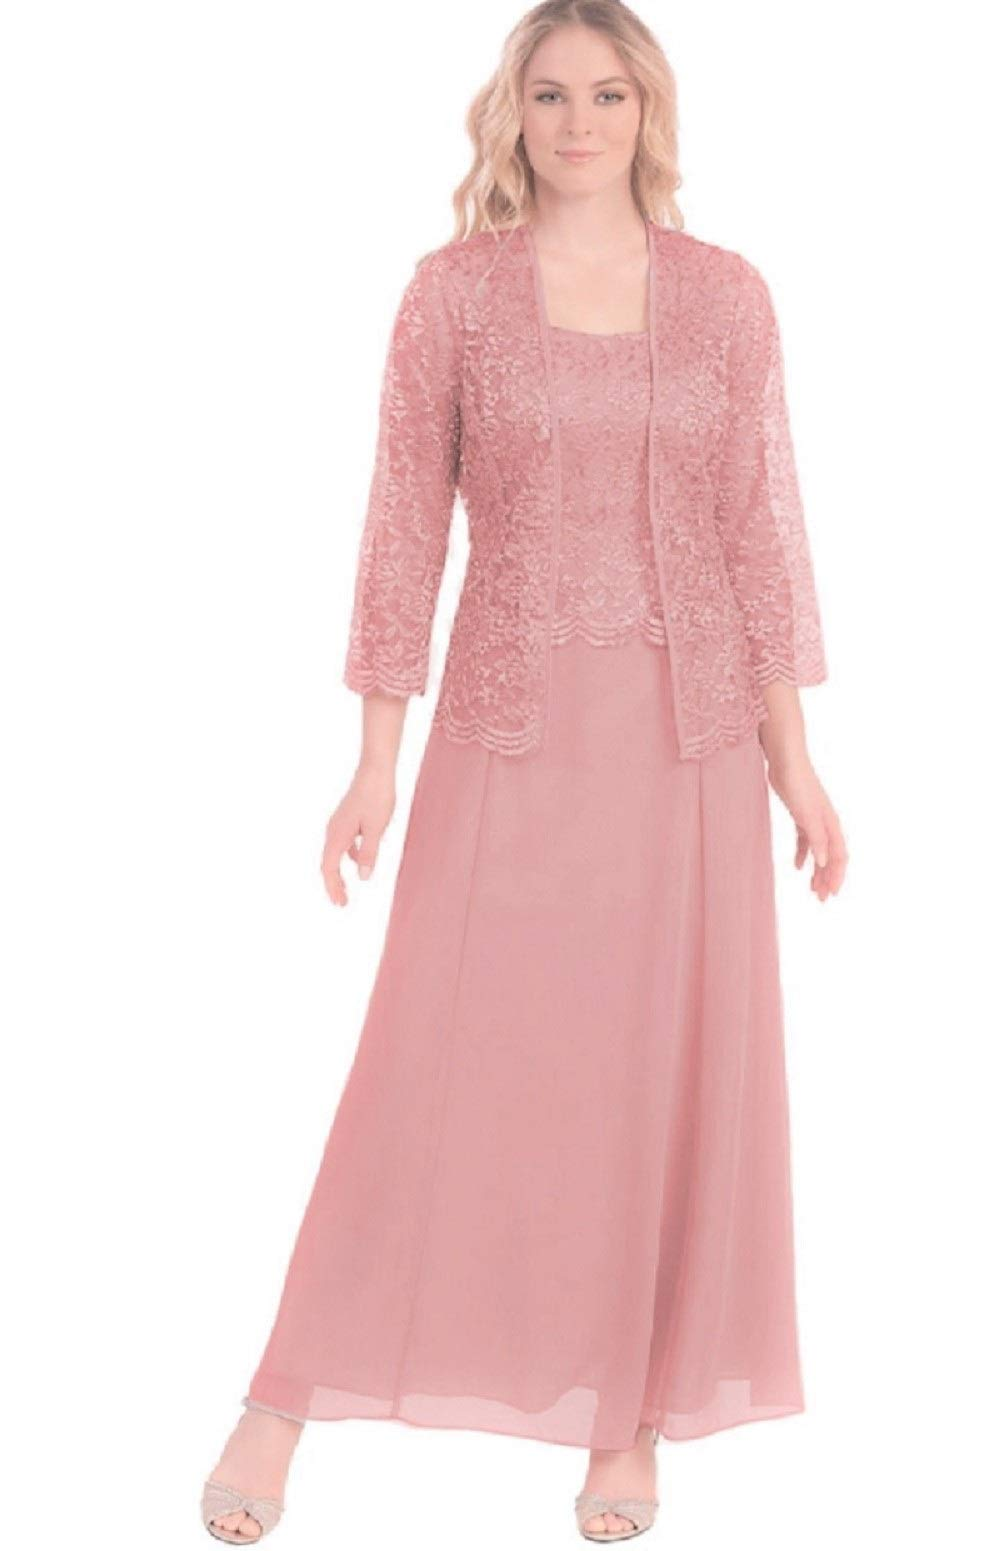 Mother Of The Bride Dresses - Womens Long Mother Of The Bride Evening Formal Lace Dress With Jacket